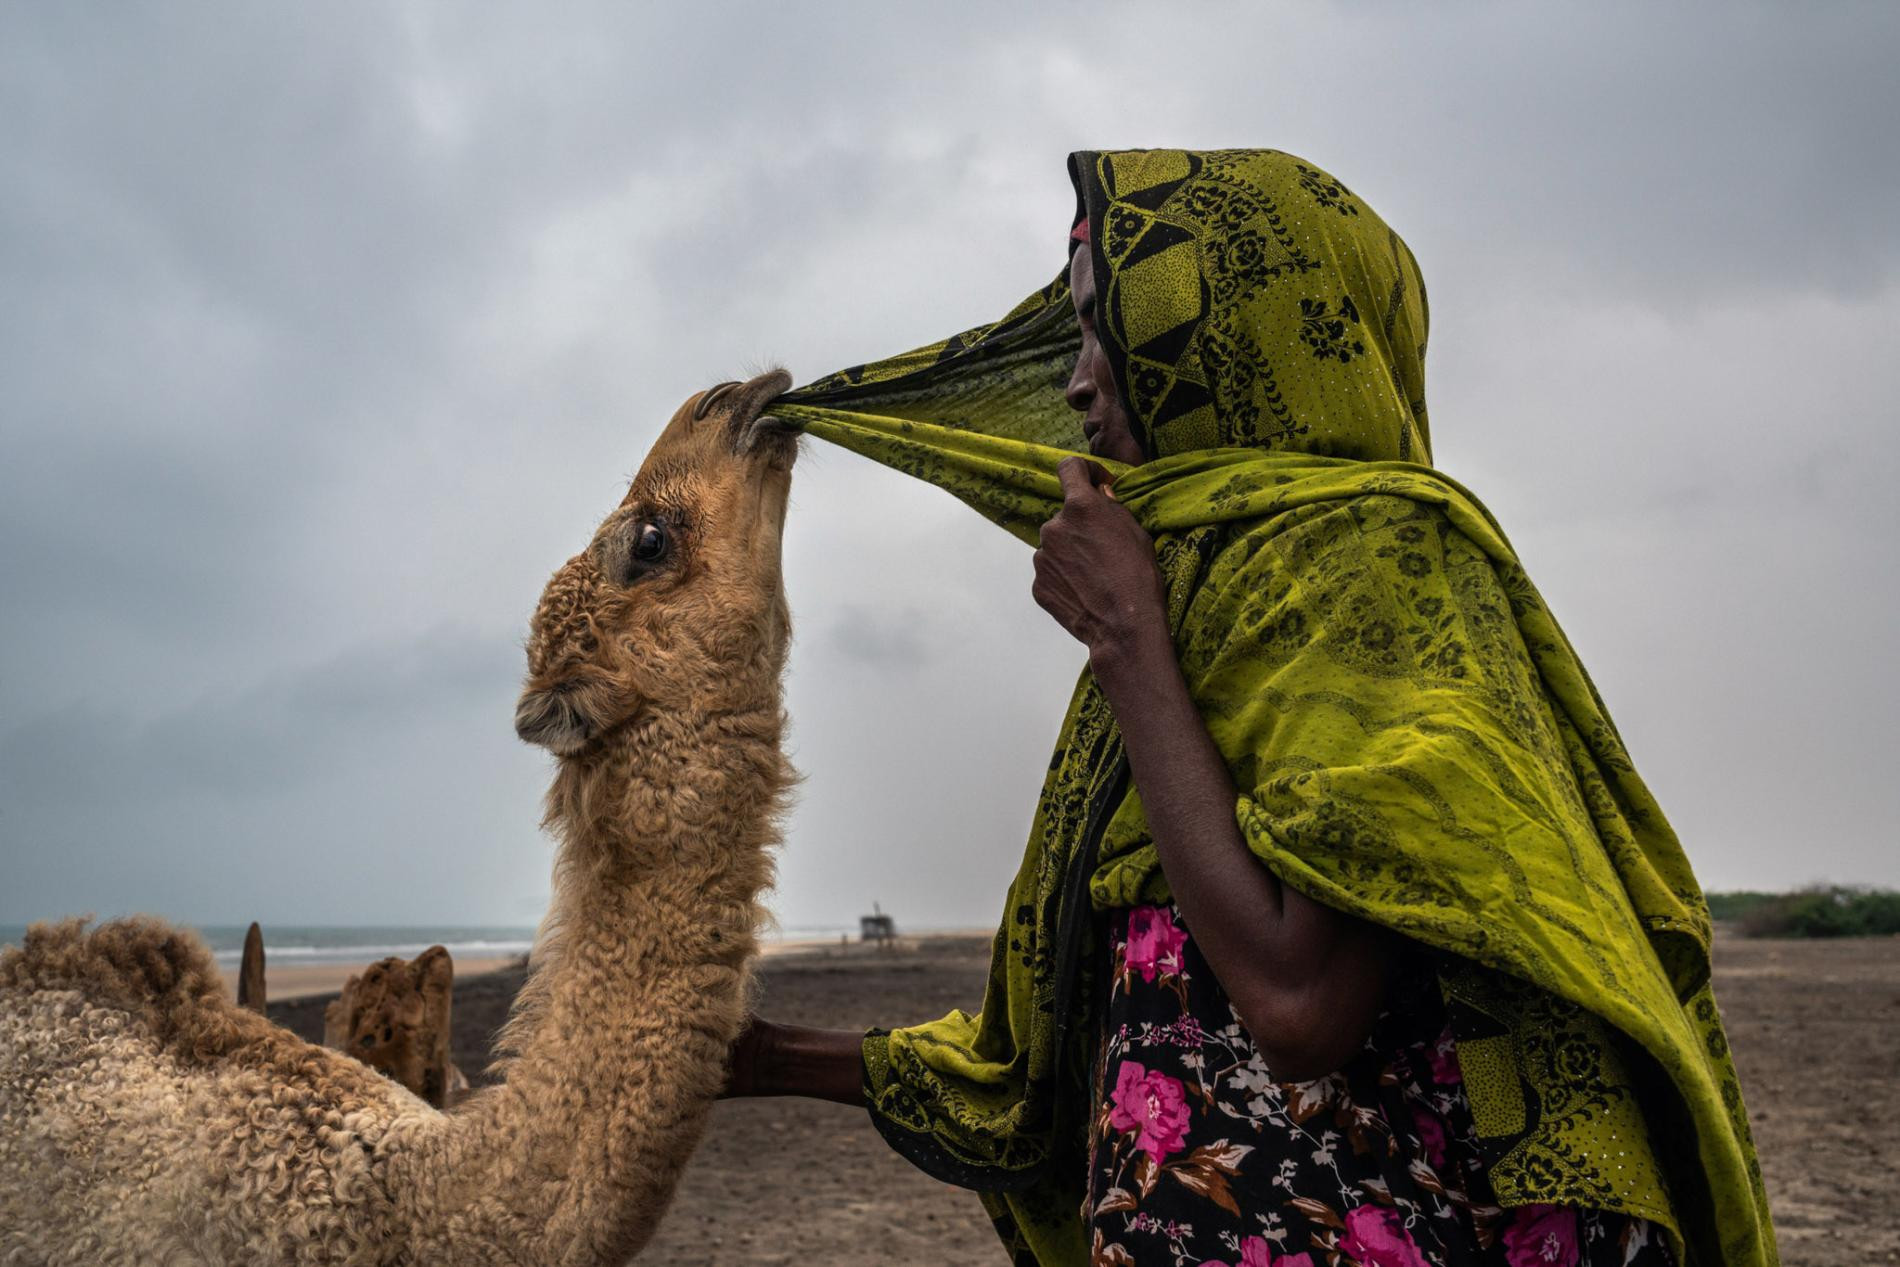 Baarud, a five-month-old camel tugs at Aadar Mohamed's hijab. Baarud means tough, a name the camel inherited from his mother, who survived three droughts and a cyclone that killed off hundreds of other camels in the village of Hijiinle, on Somaliland's north coast.